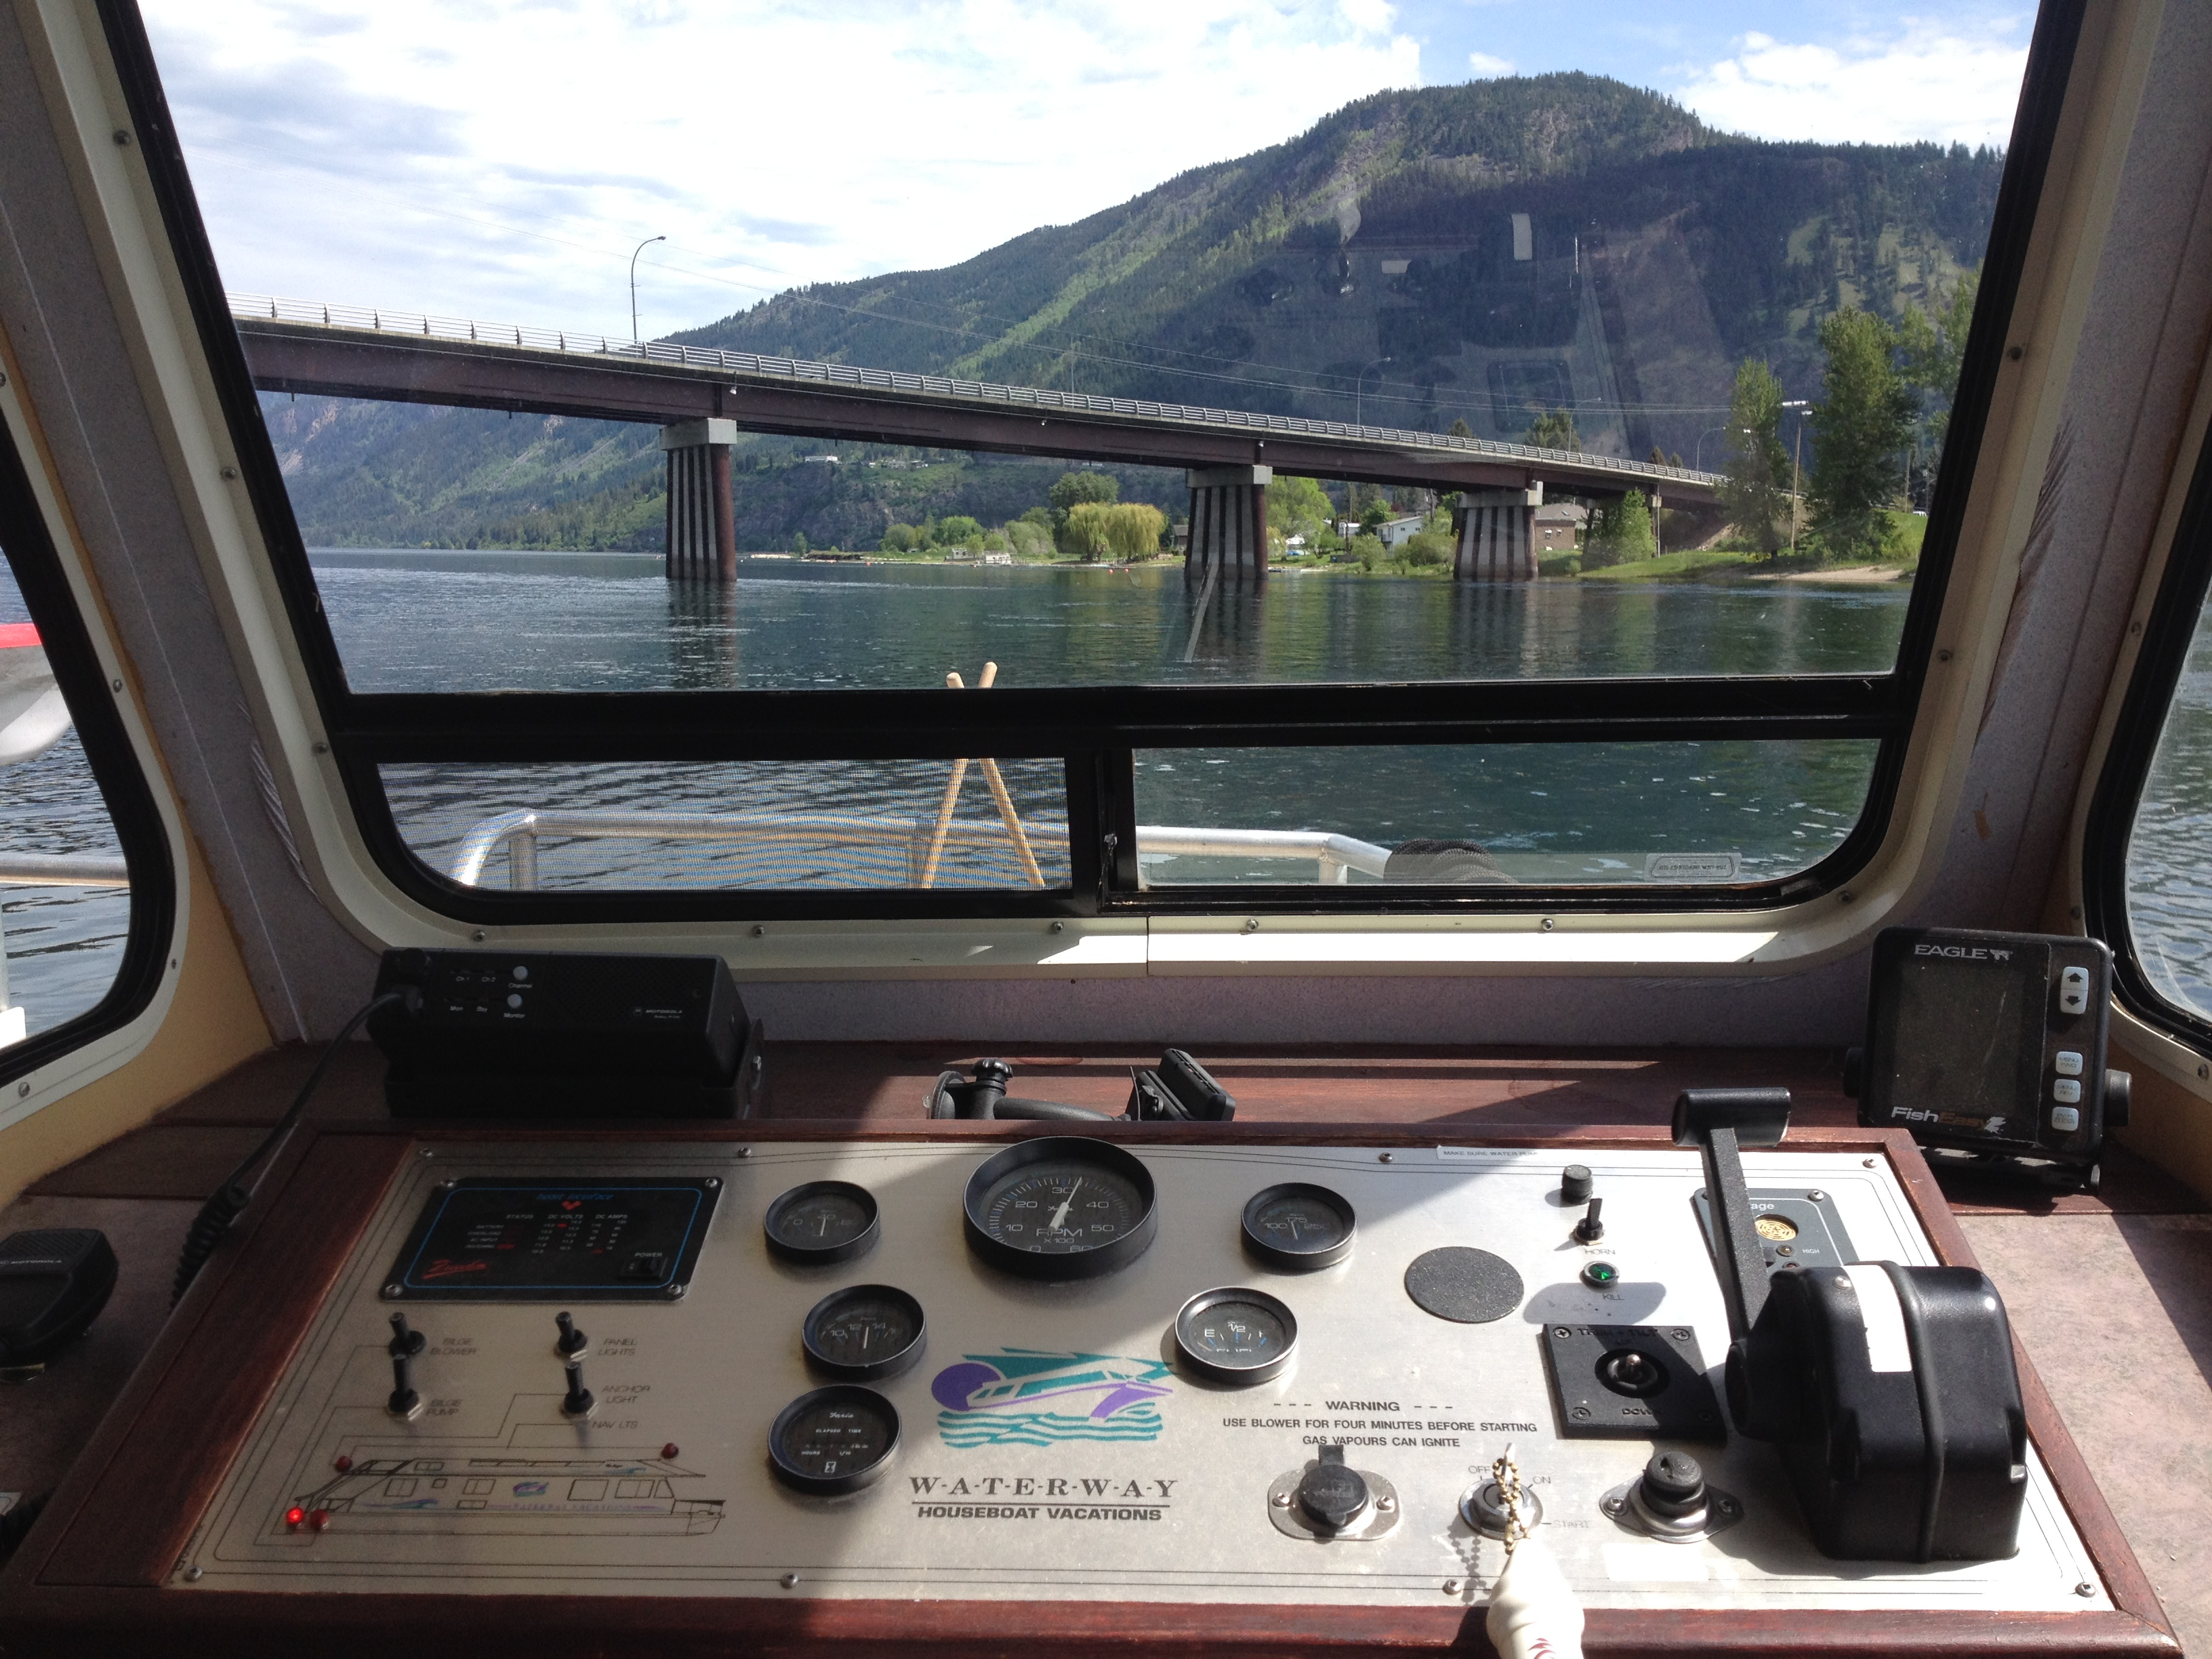 View from the Captain's helm of the houseboat.